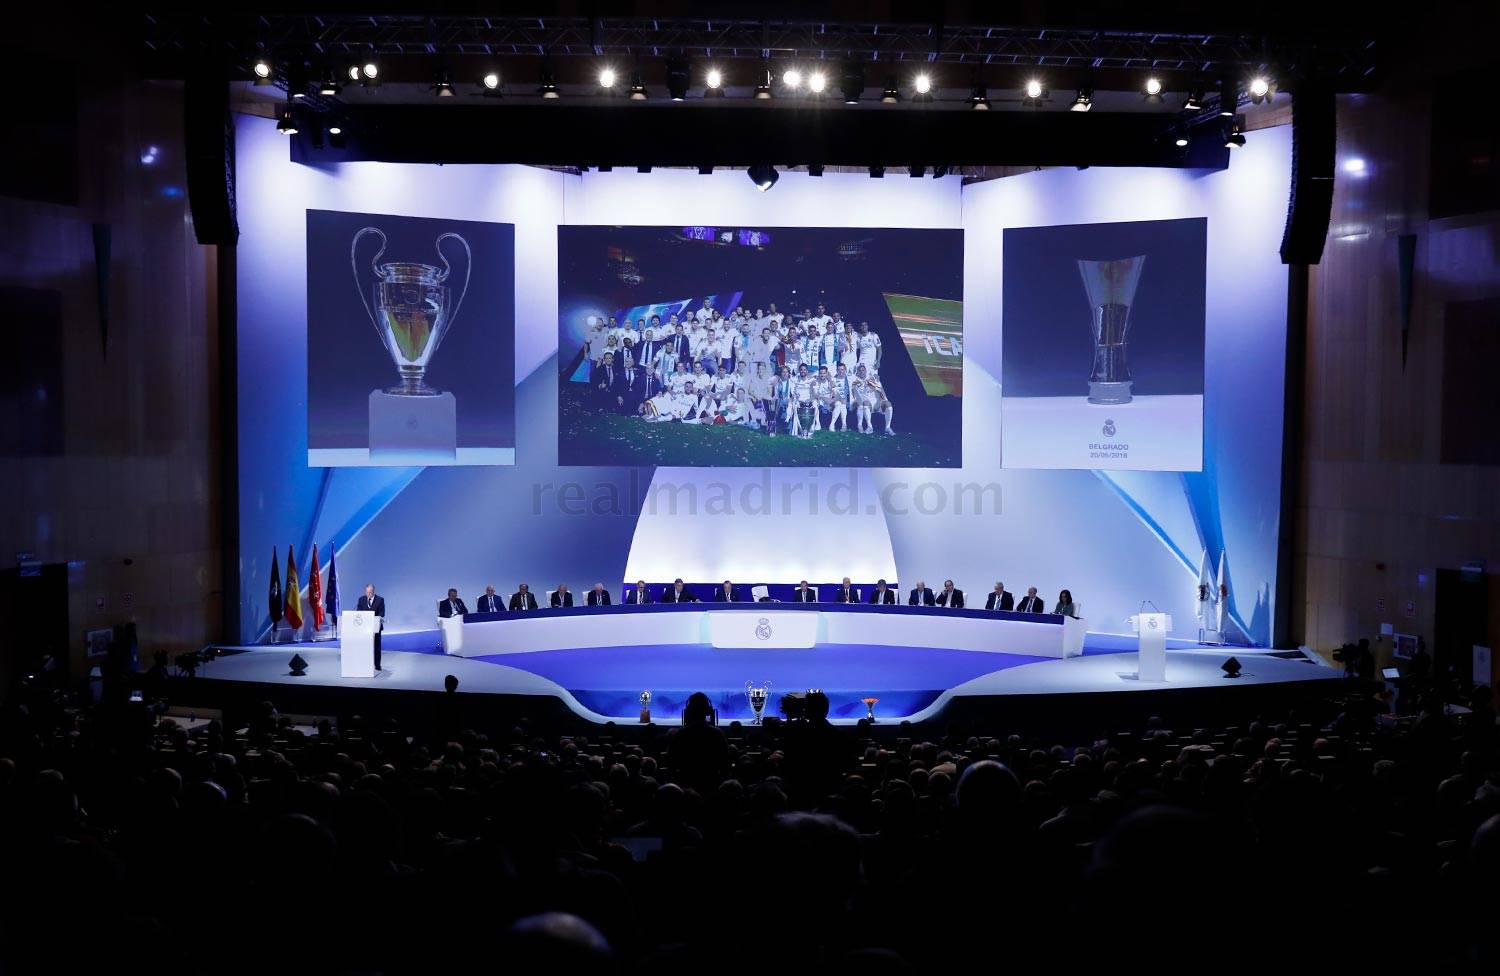 Real Madrid - Asamblea General Ordinaria 2018 - 23-09-2018